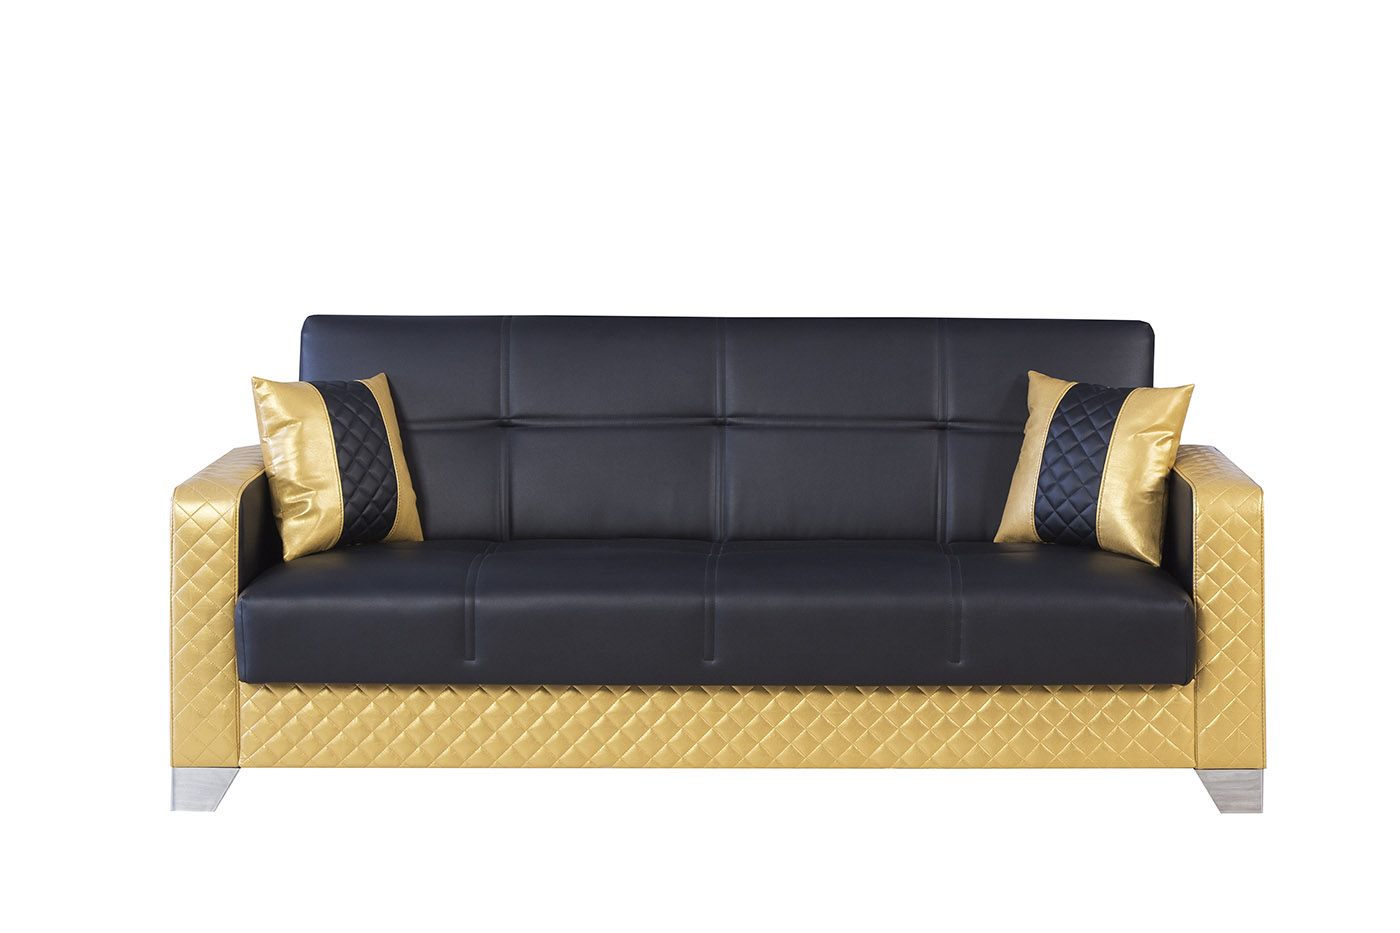 Maximum Value Black Gold Convertible Sofa By Casamode